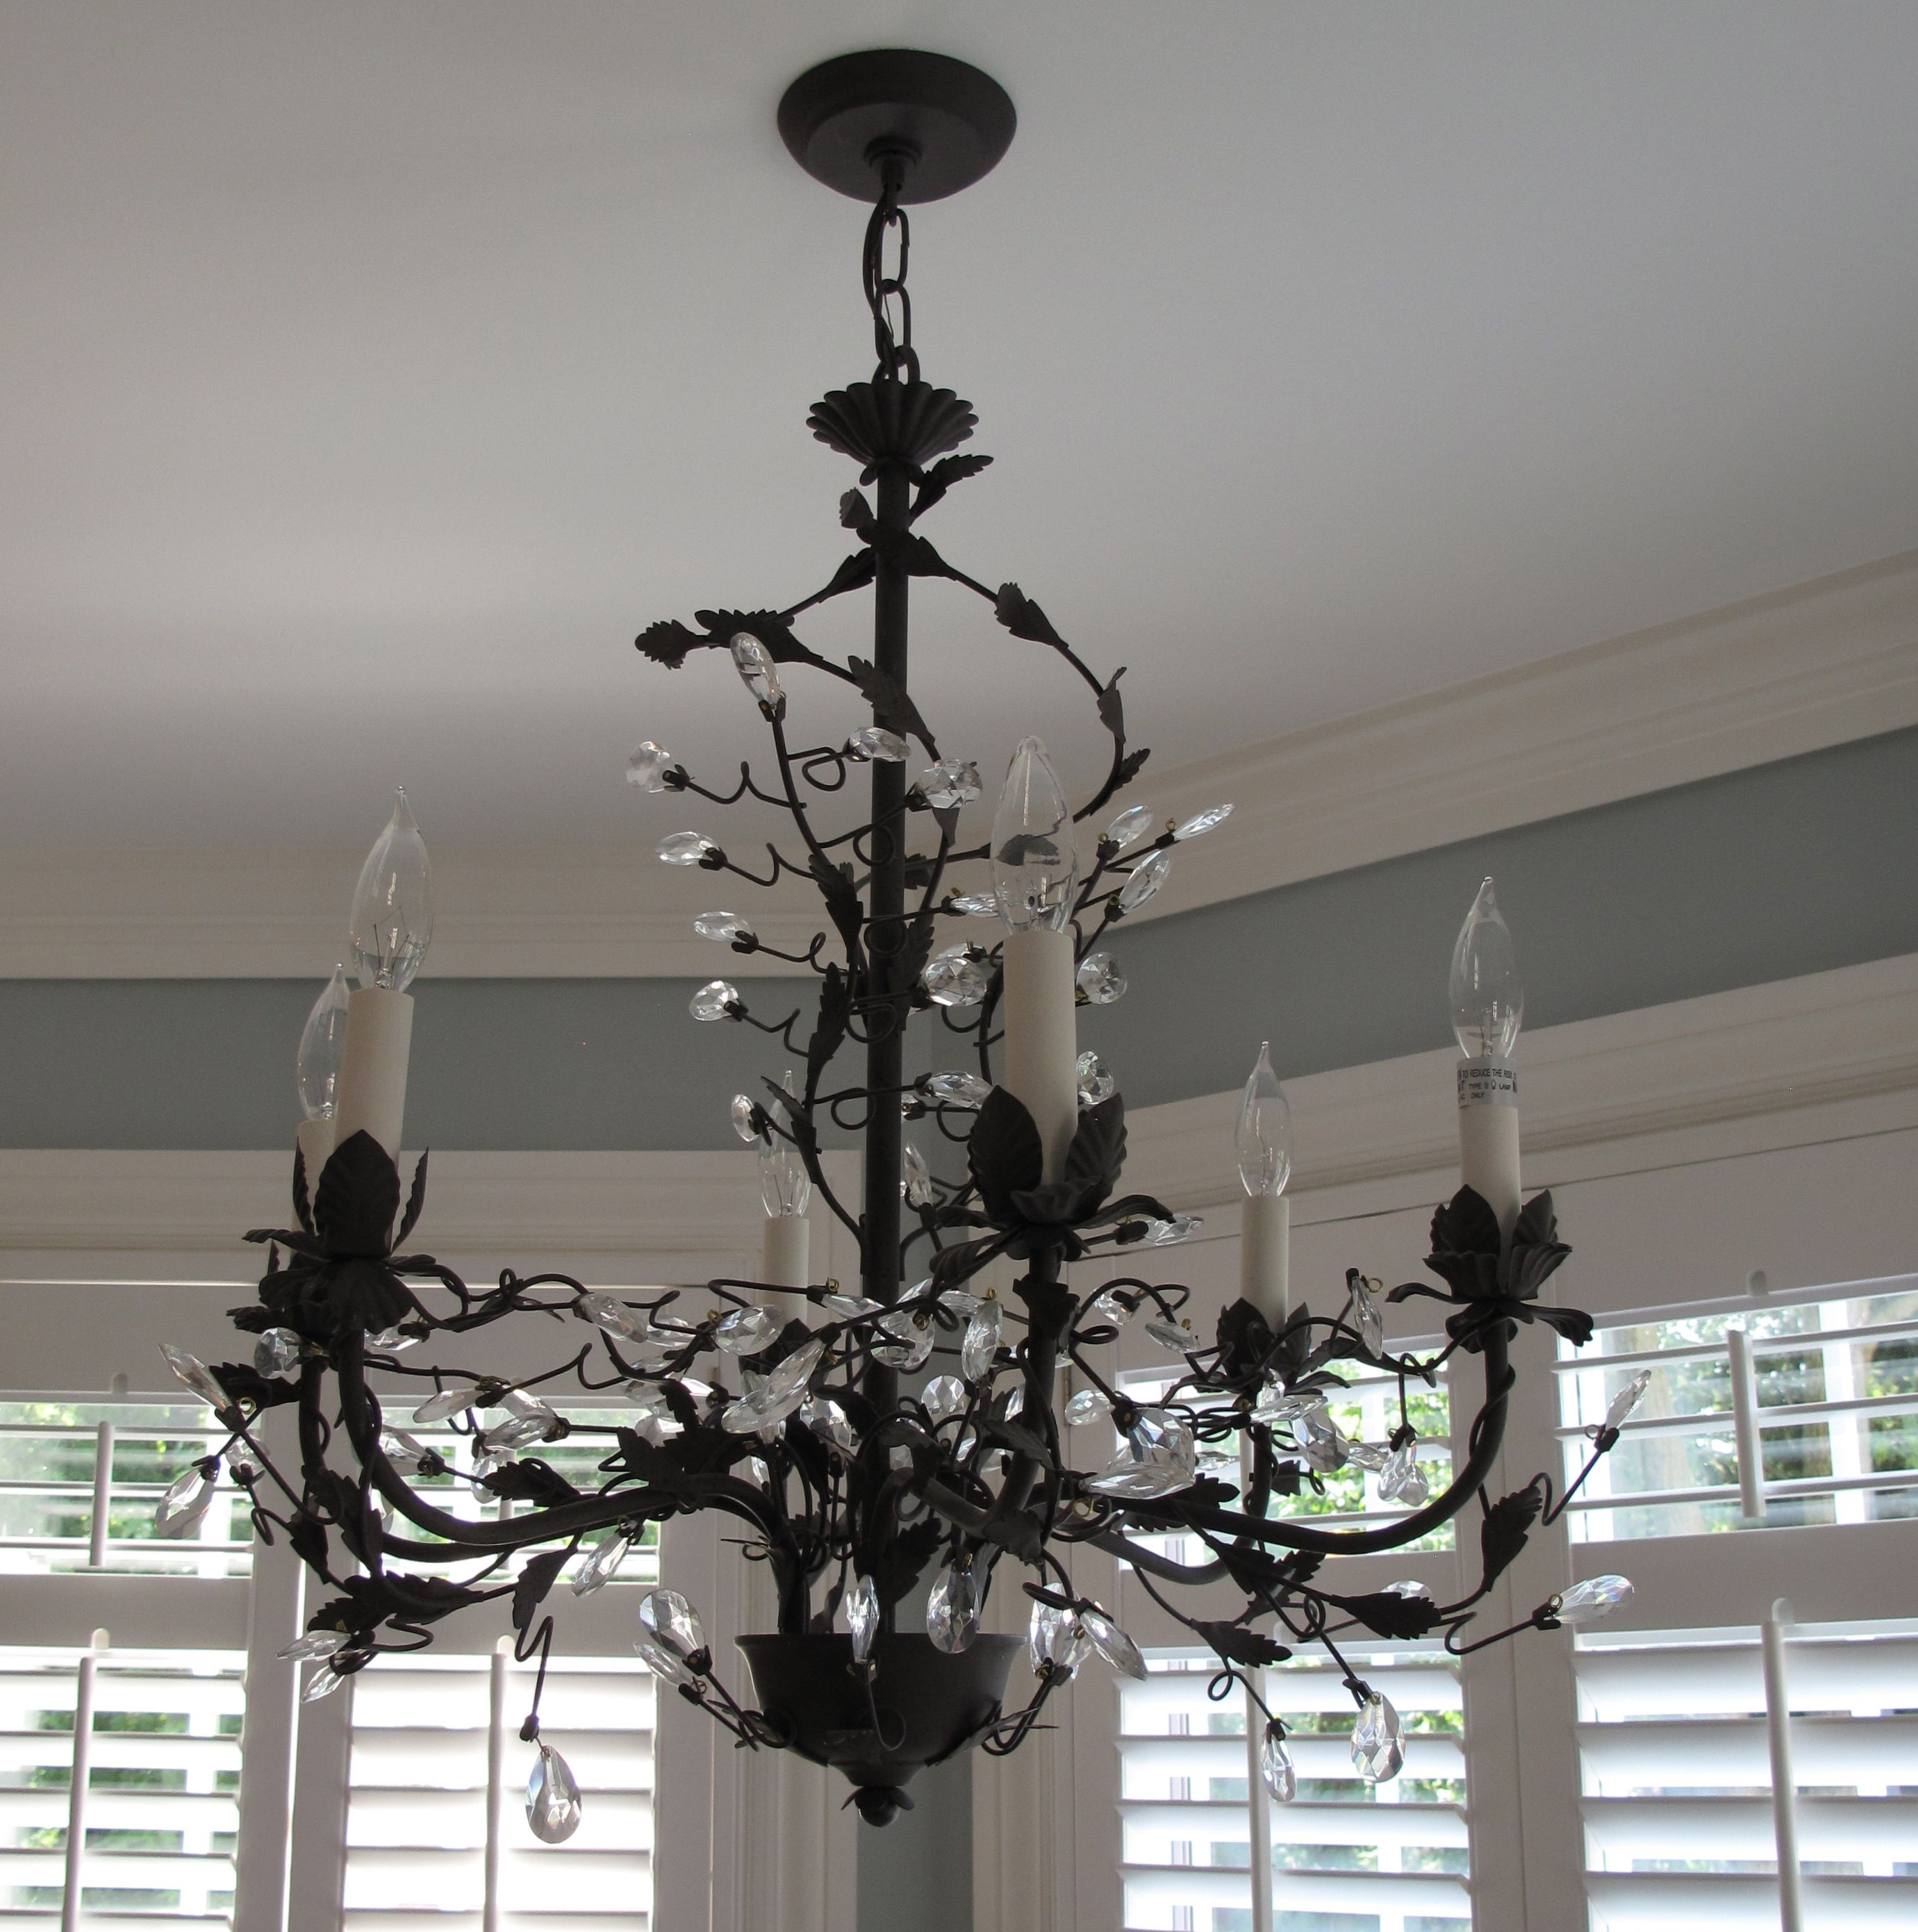 pictures to hang in master bathroom%0A This antique crystal chandelier is hanging above the Jacuzzi in the master  bath  www